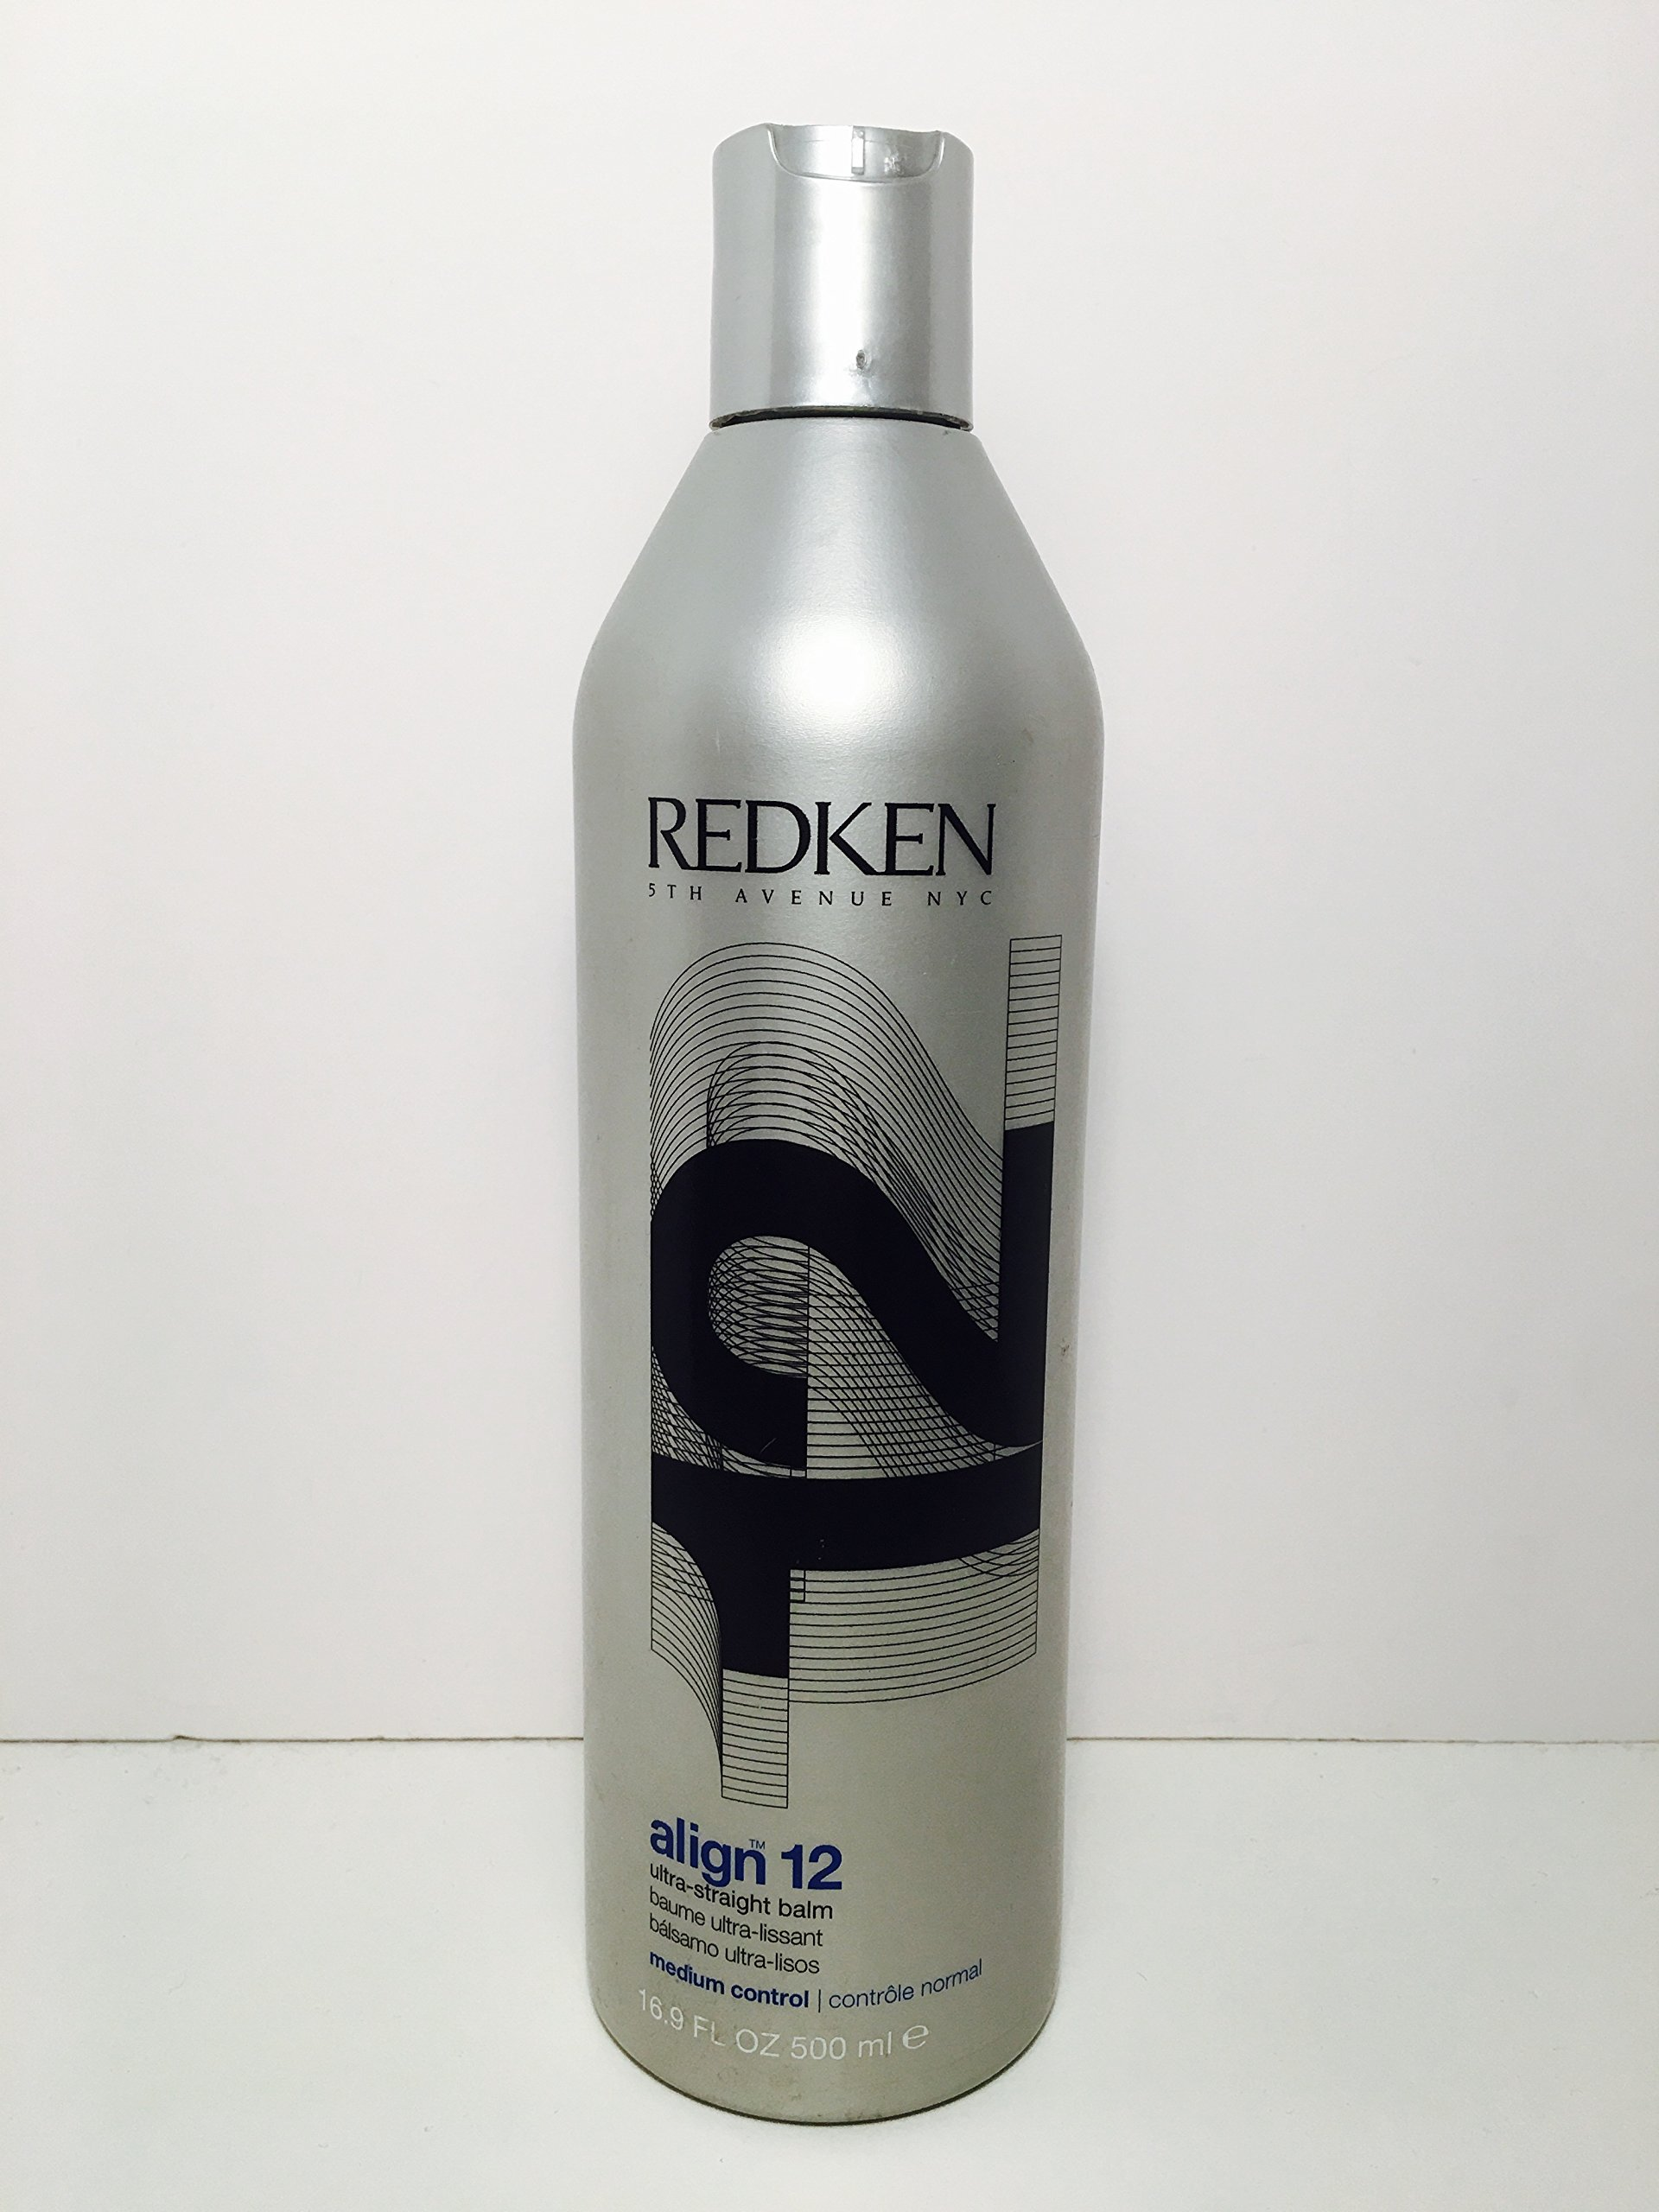 Redken Align 12 Ultra-Straight Balm Unisex, 16.9 Ounce by REDKEN (Image #1)